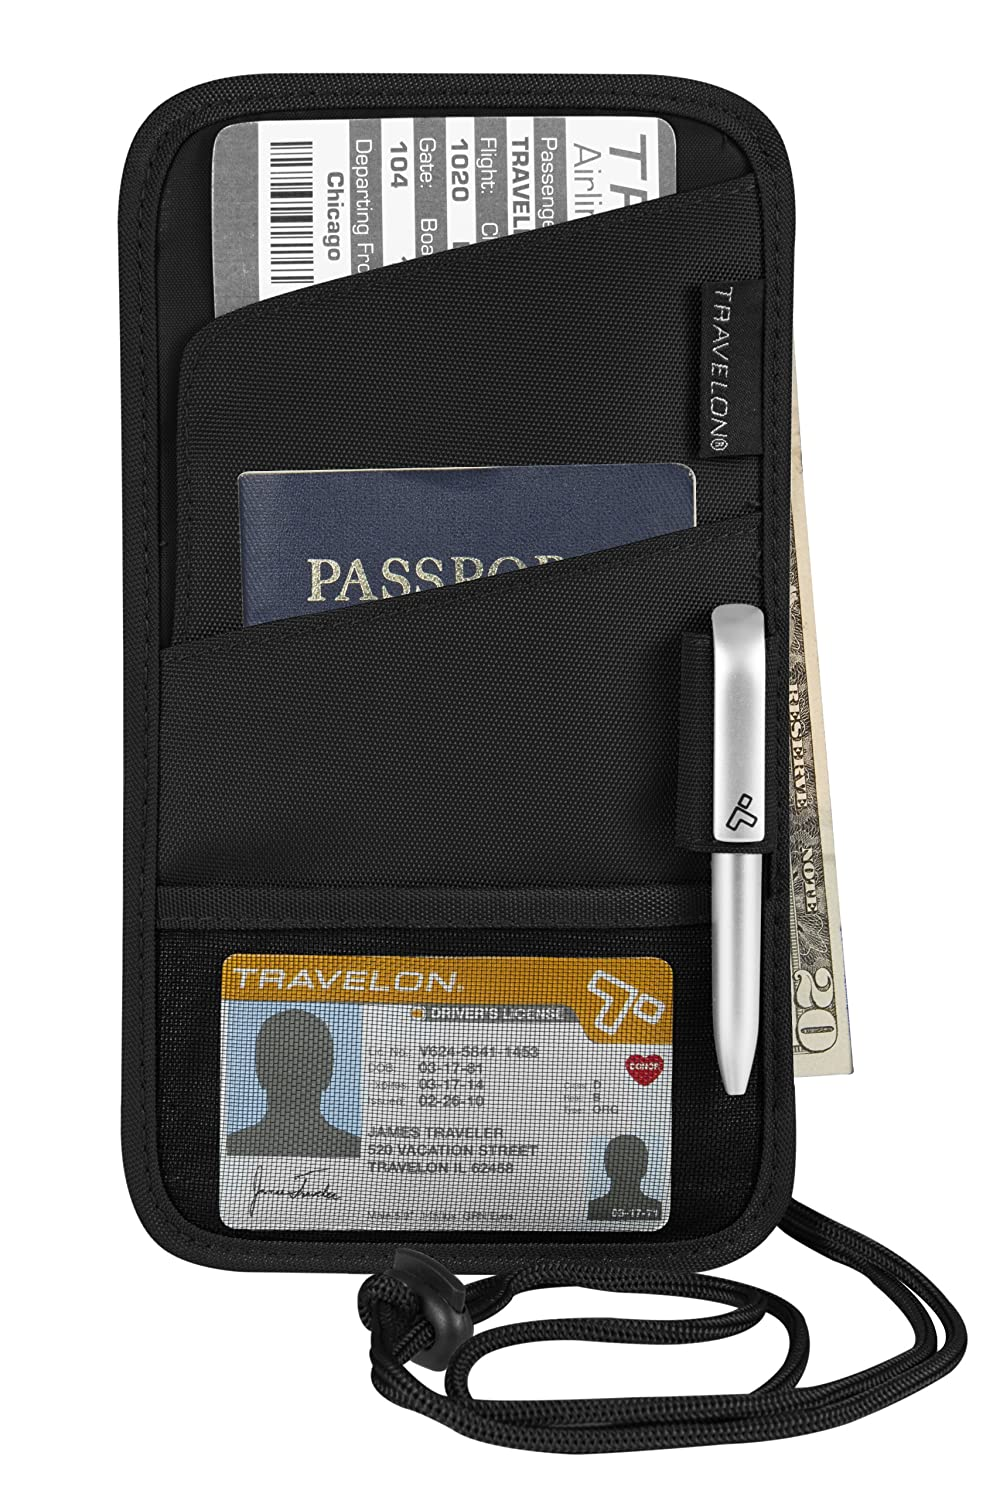 Travelon Id and Boarding Pass Holder, Black, One Size 42763 500